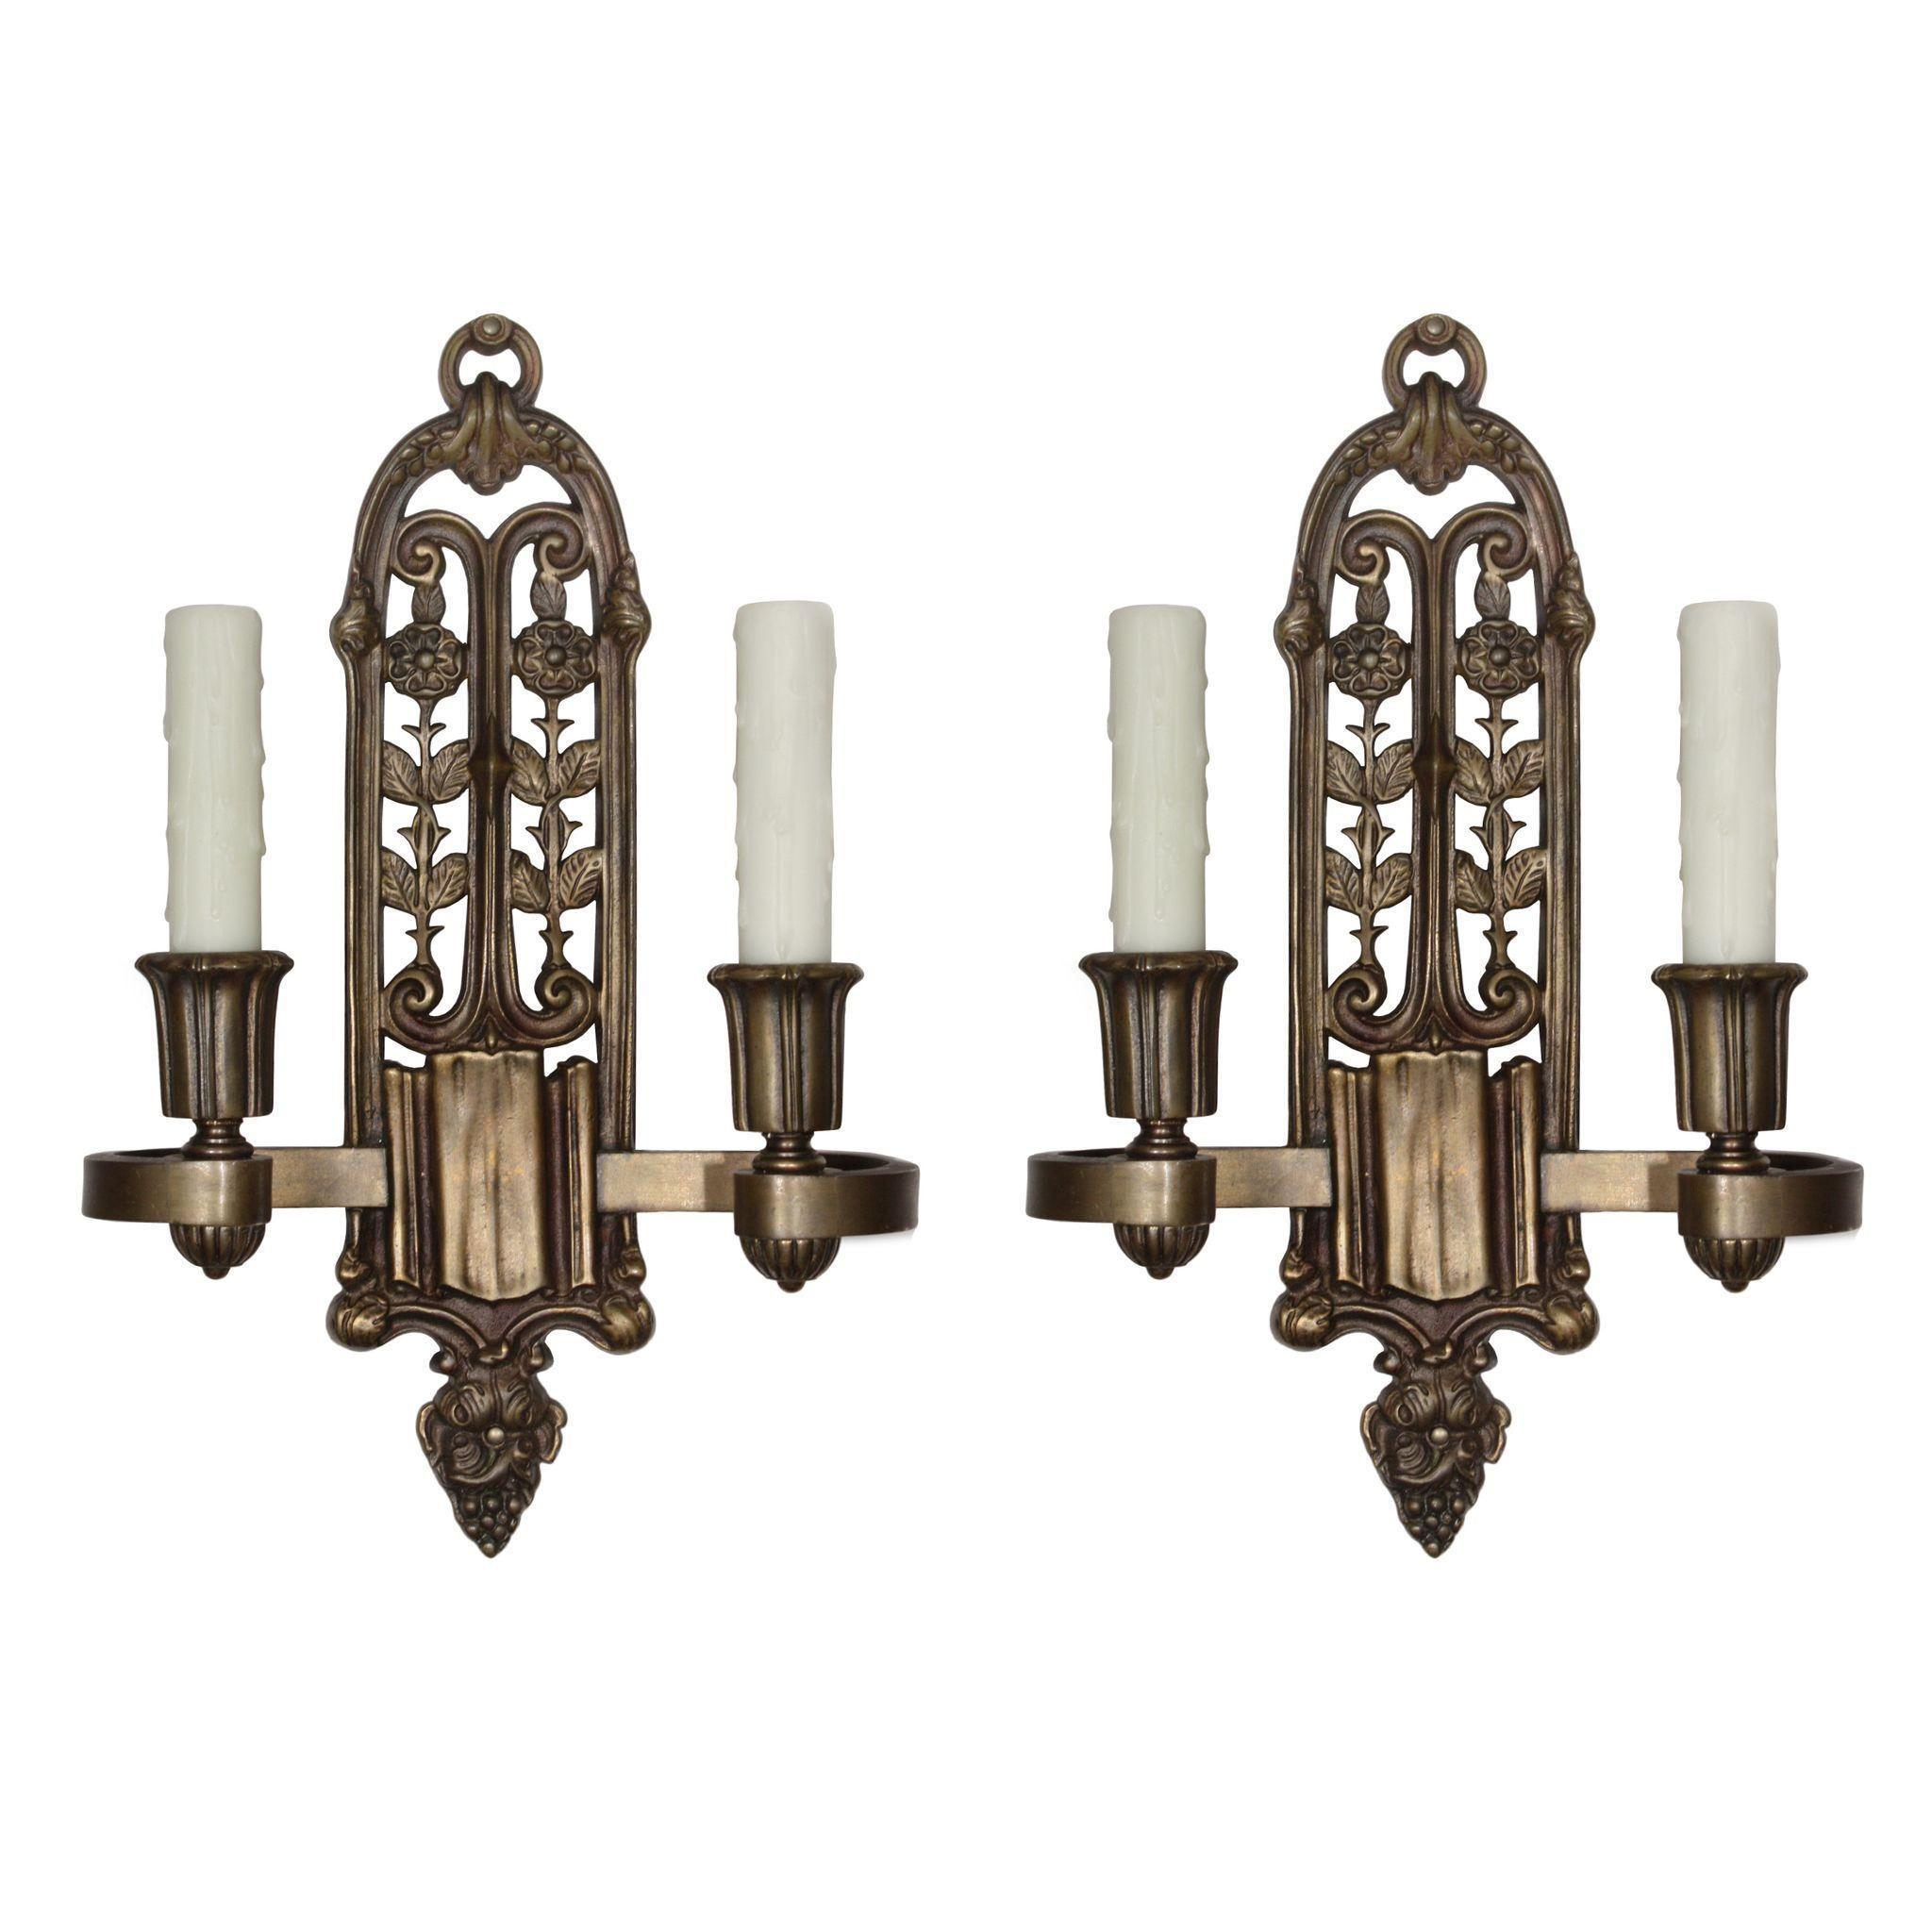 Beautiful Antique Spanish Revival Sconce Pair